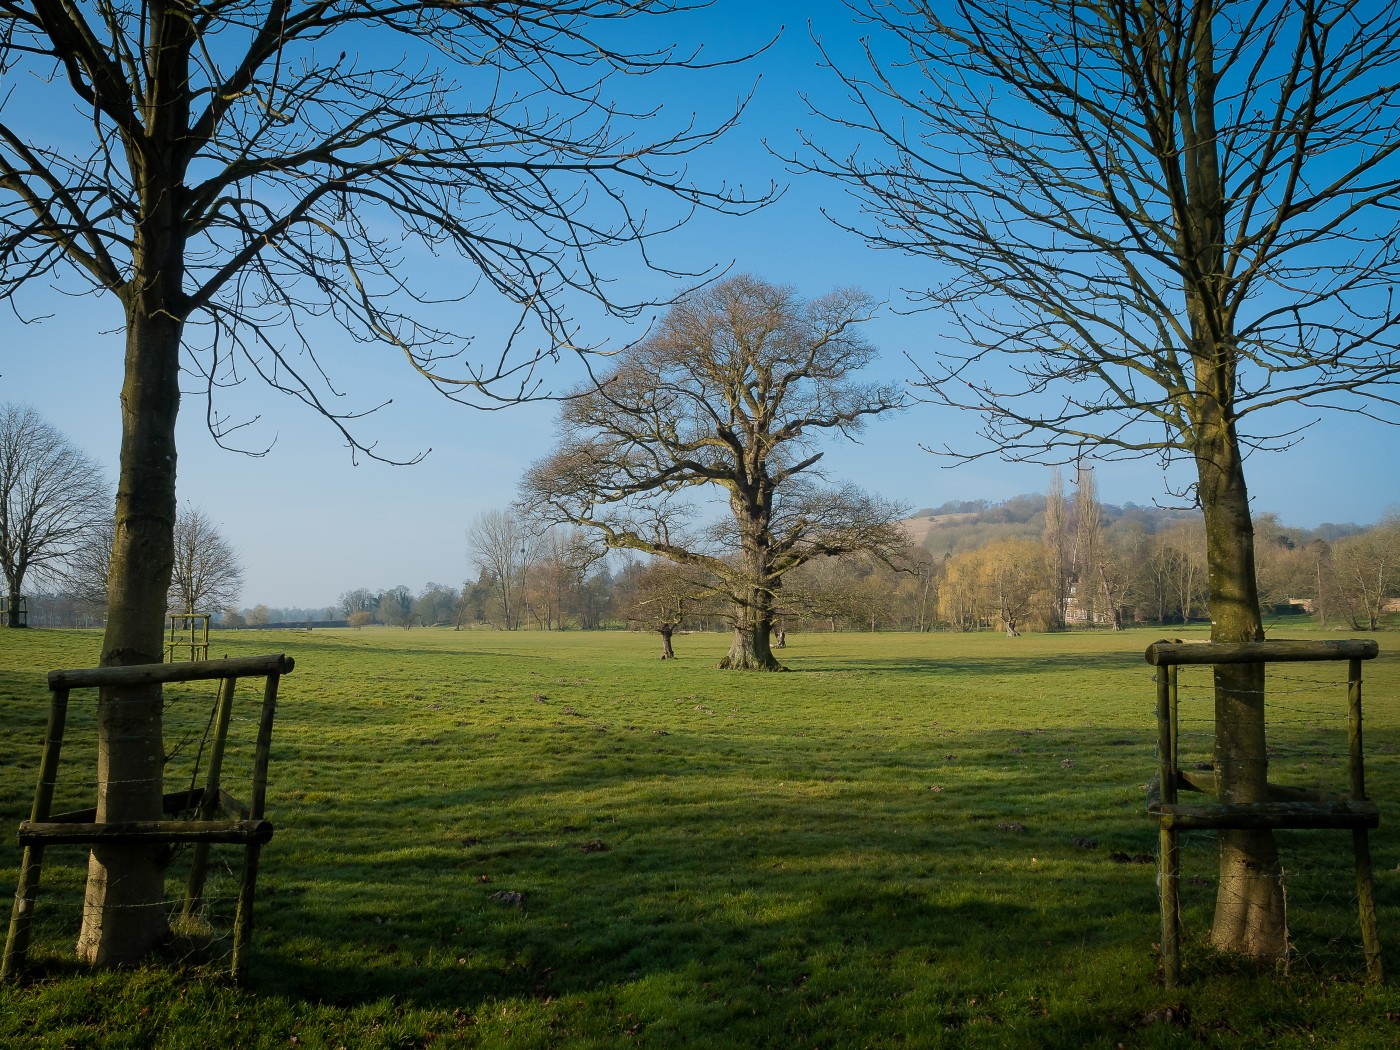 A view of area near the Great Stour at Godmersham, Kent.